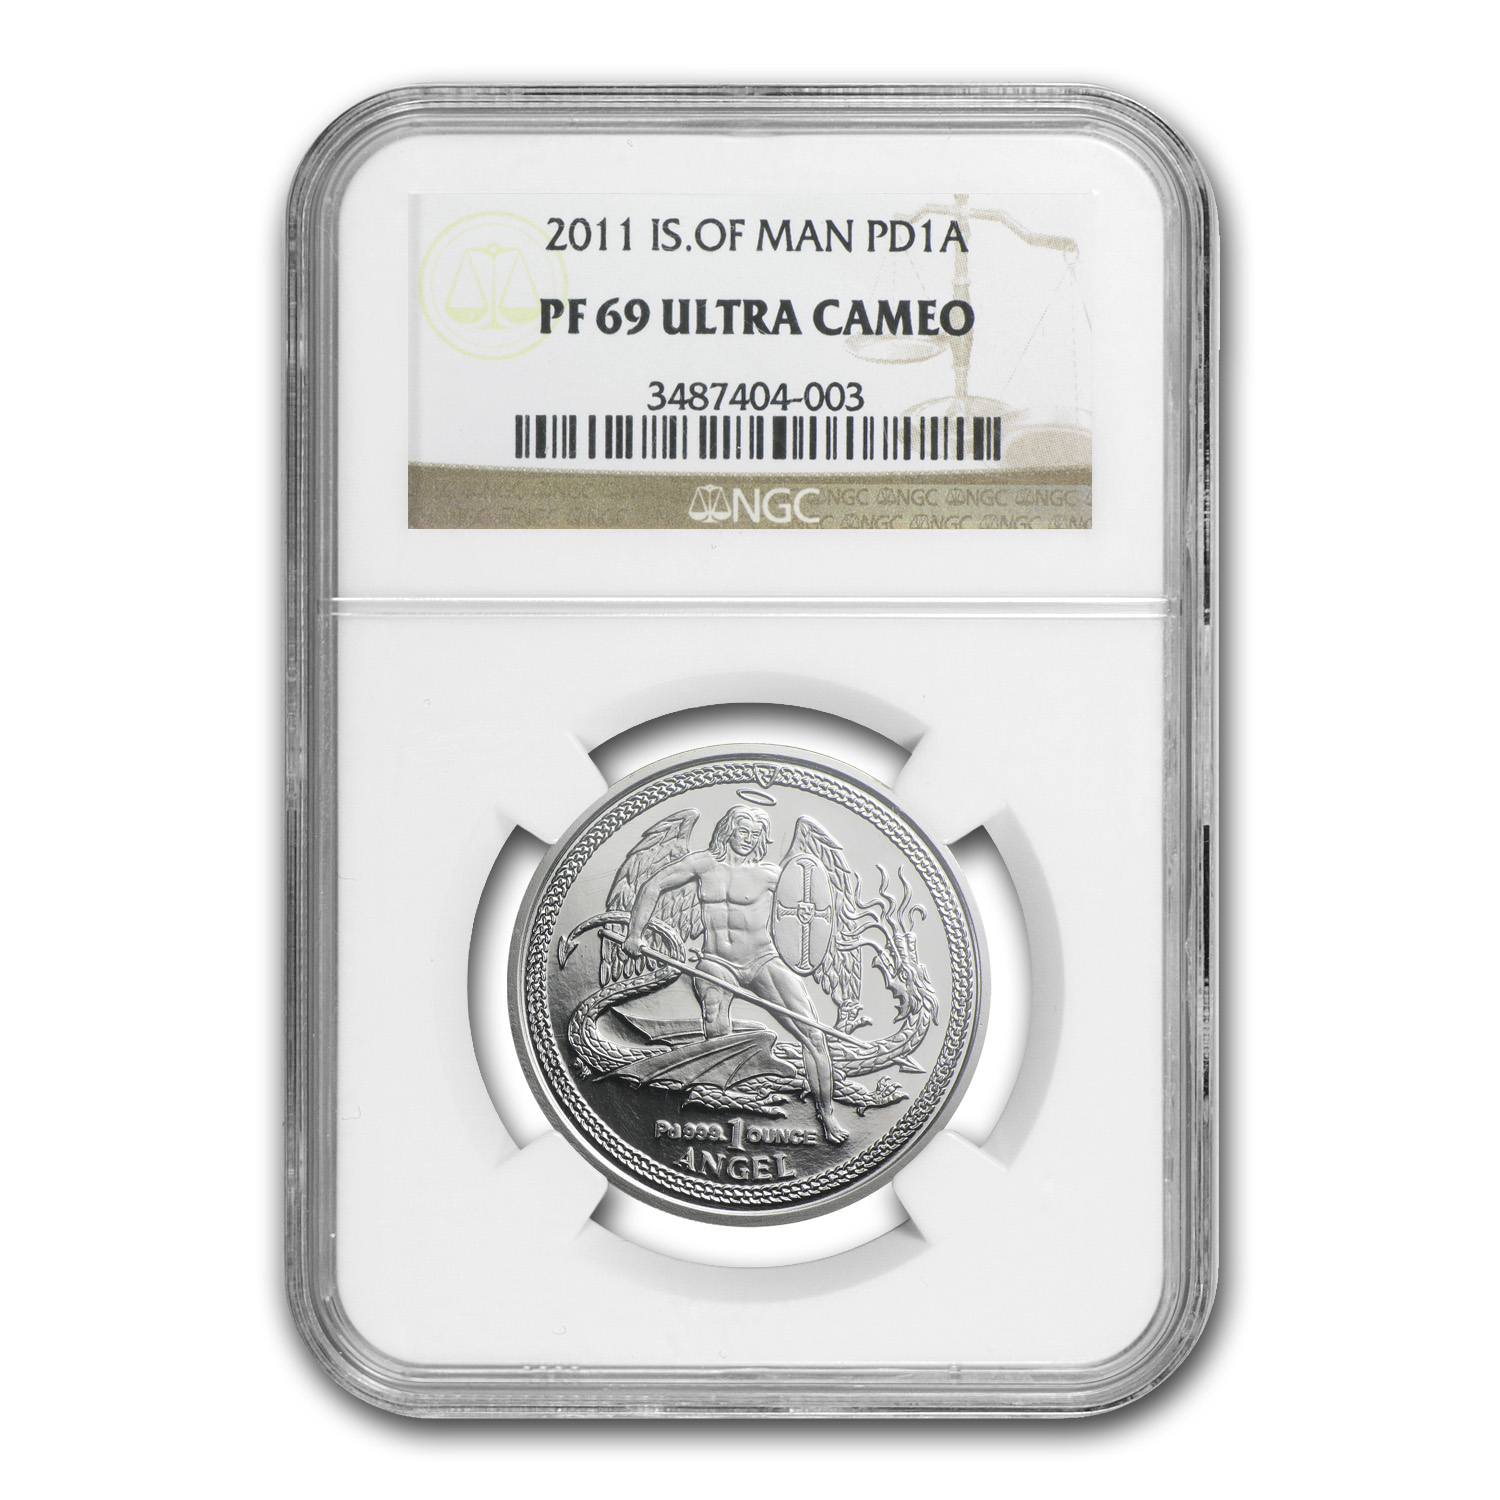 2011 1 oz Isle of Man Palladium Angel PF-69 Ultra Cameo NGC